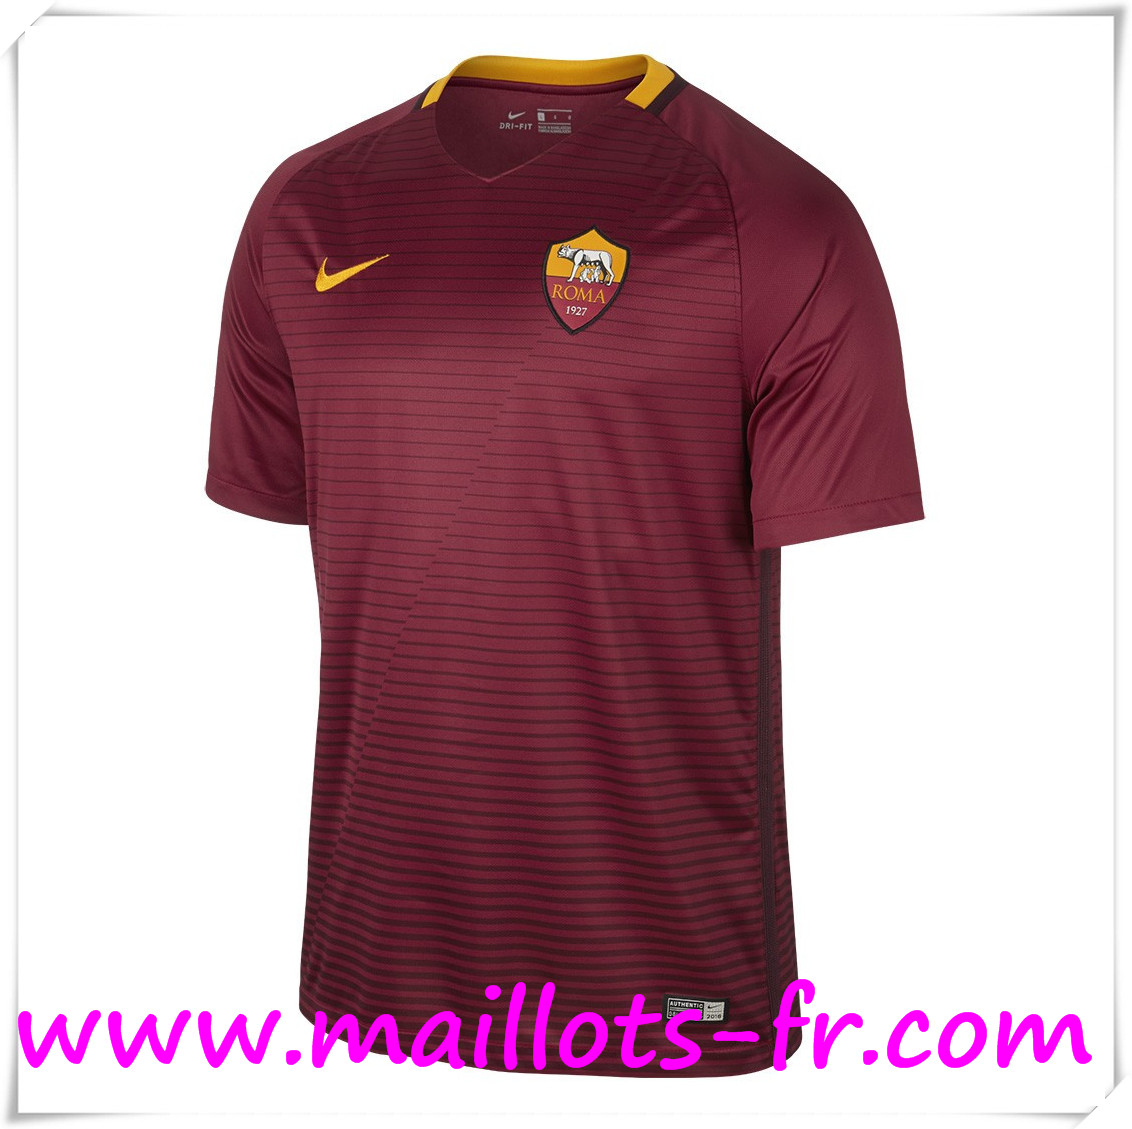 maillots-fr Maillot de Foot AS Roma Domicile 2016 2017